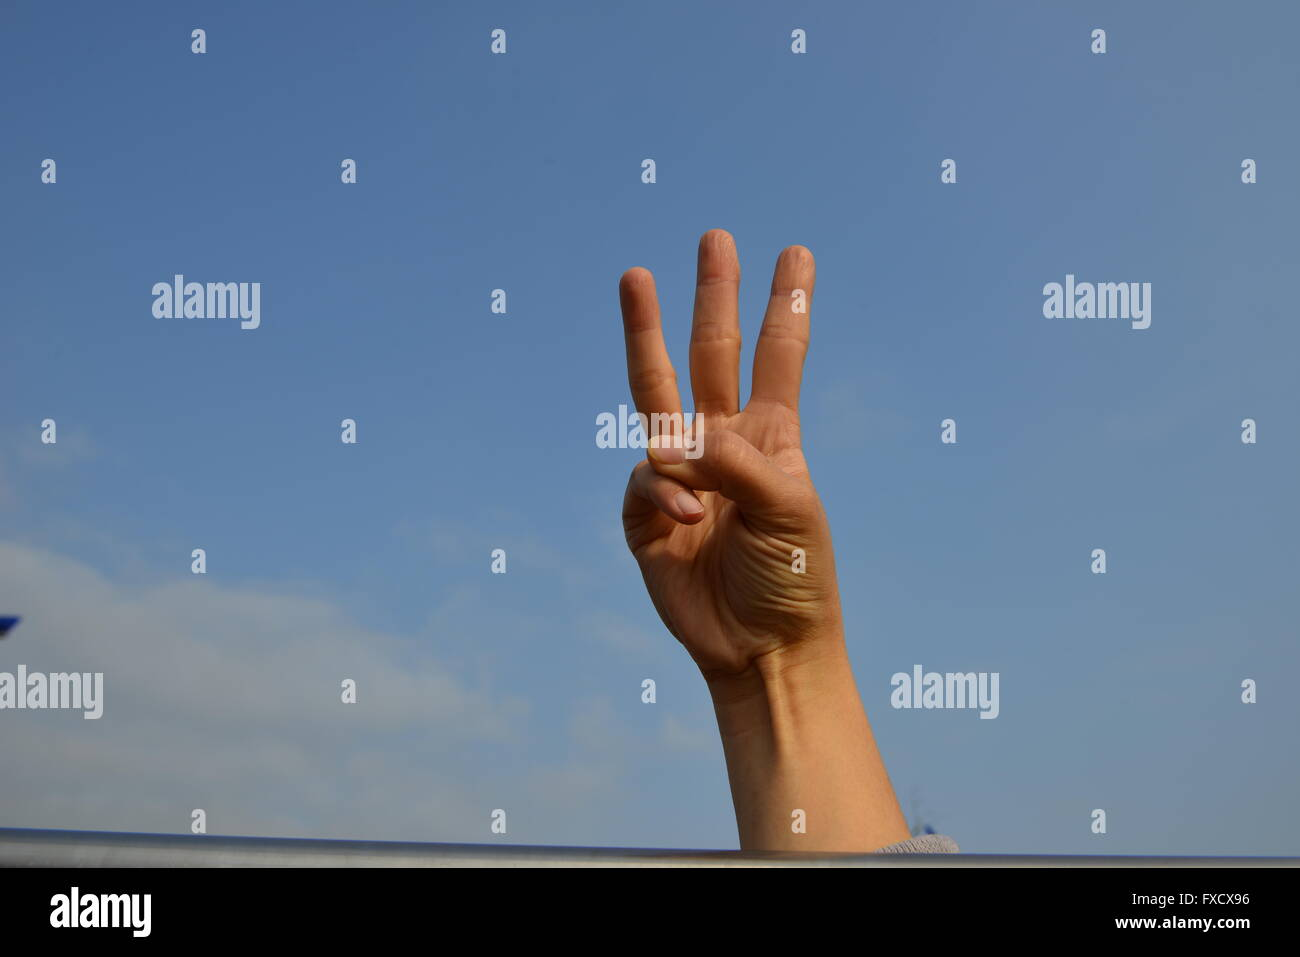 hand making the number three - Stock Image